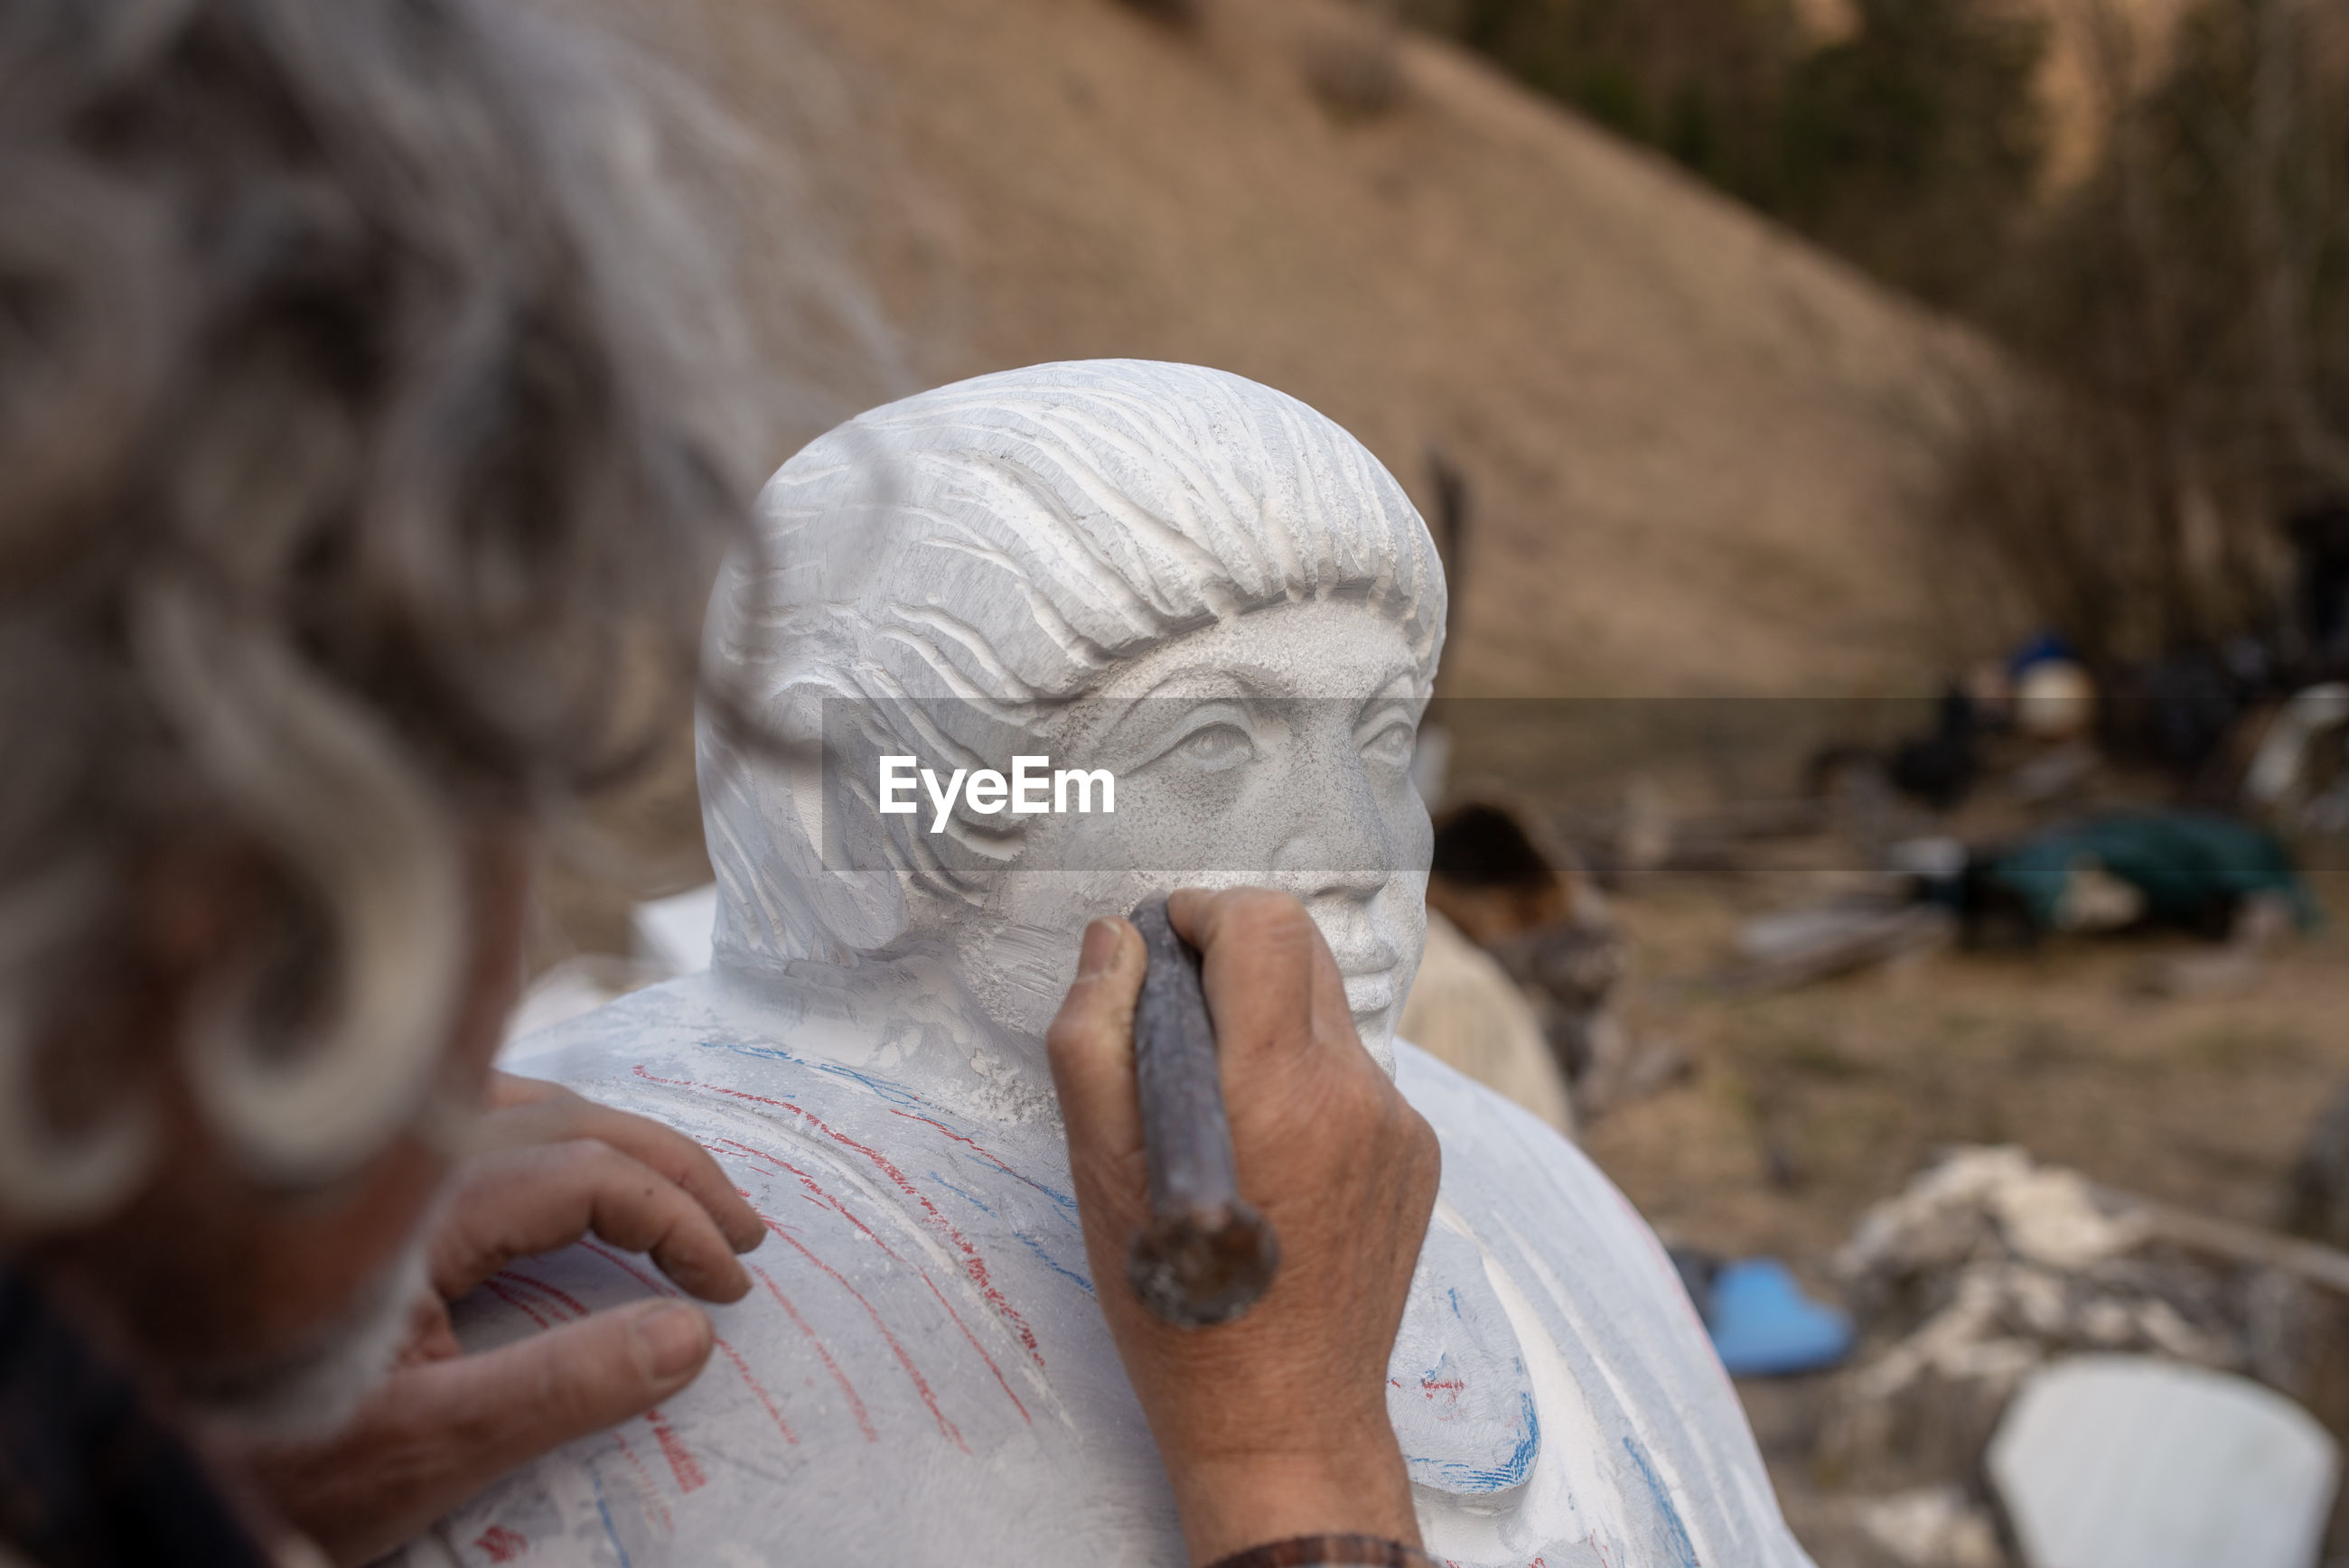 CLOSE-UP OF WOMAN HOLDING SCULPTURE